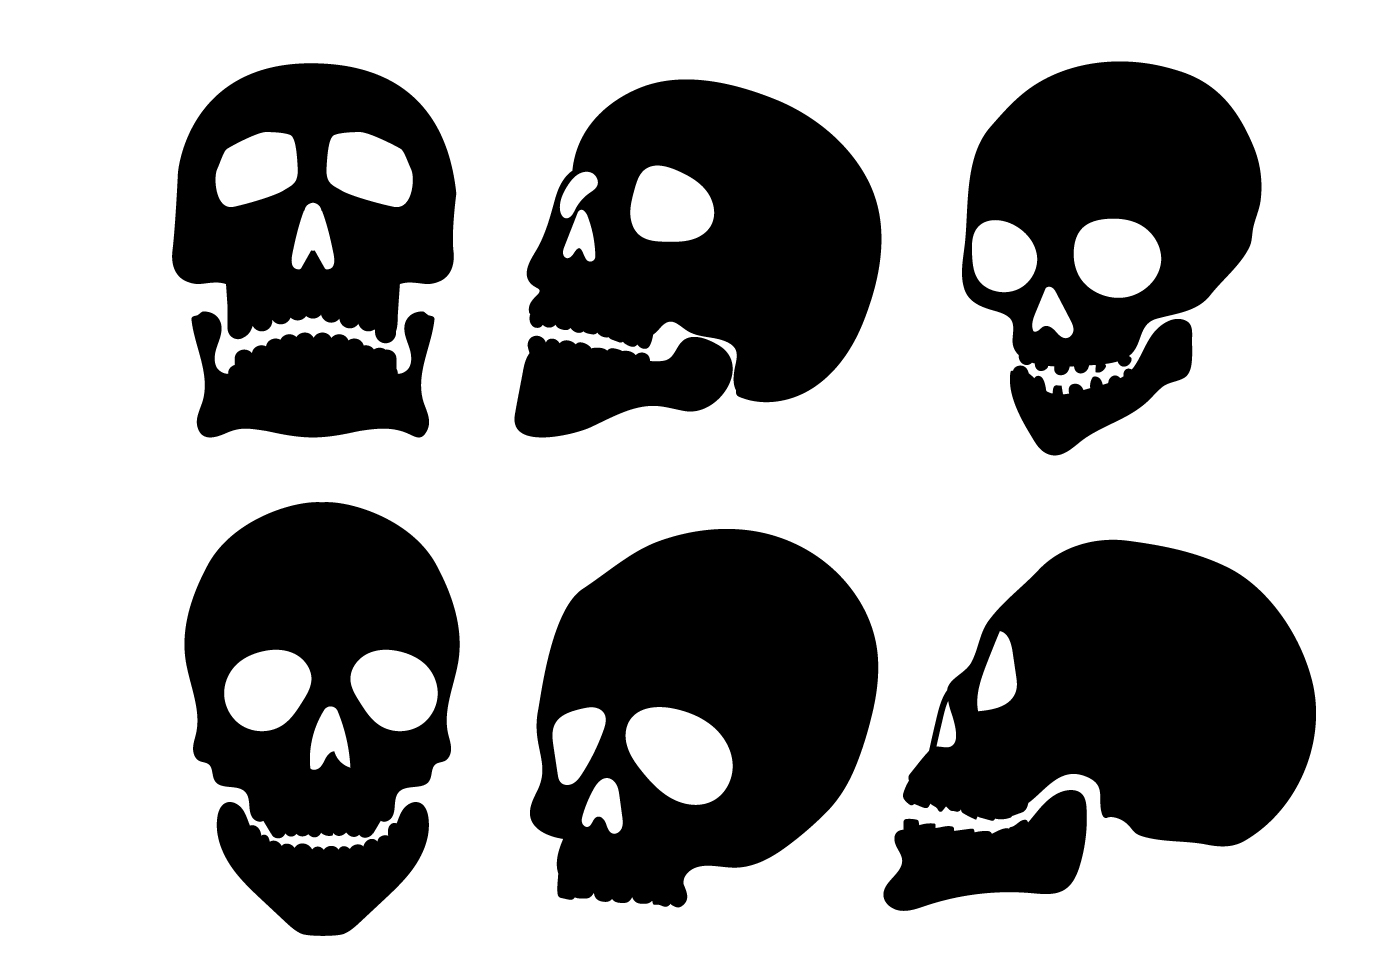 skeleton silhouette skull silhouette vectors download free vector art stock silhouette skeleton